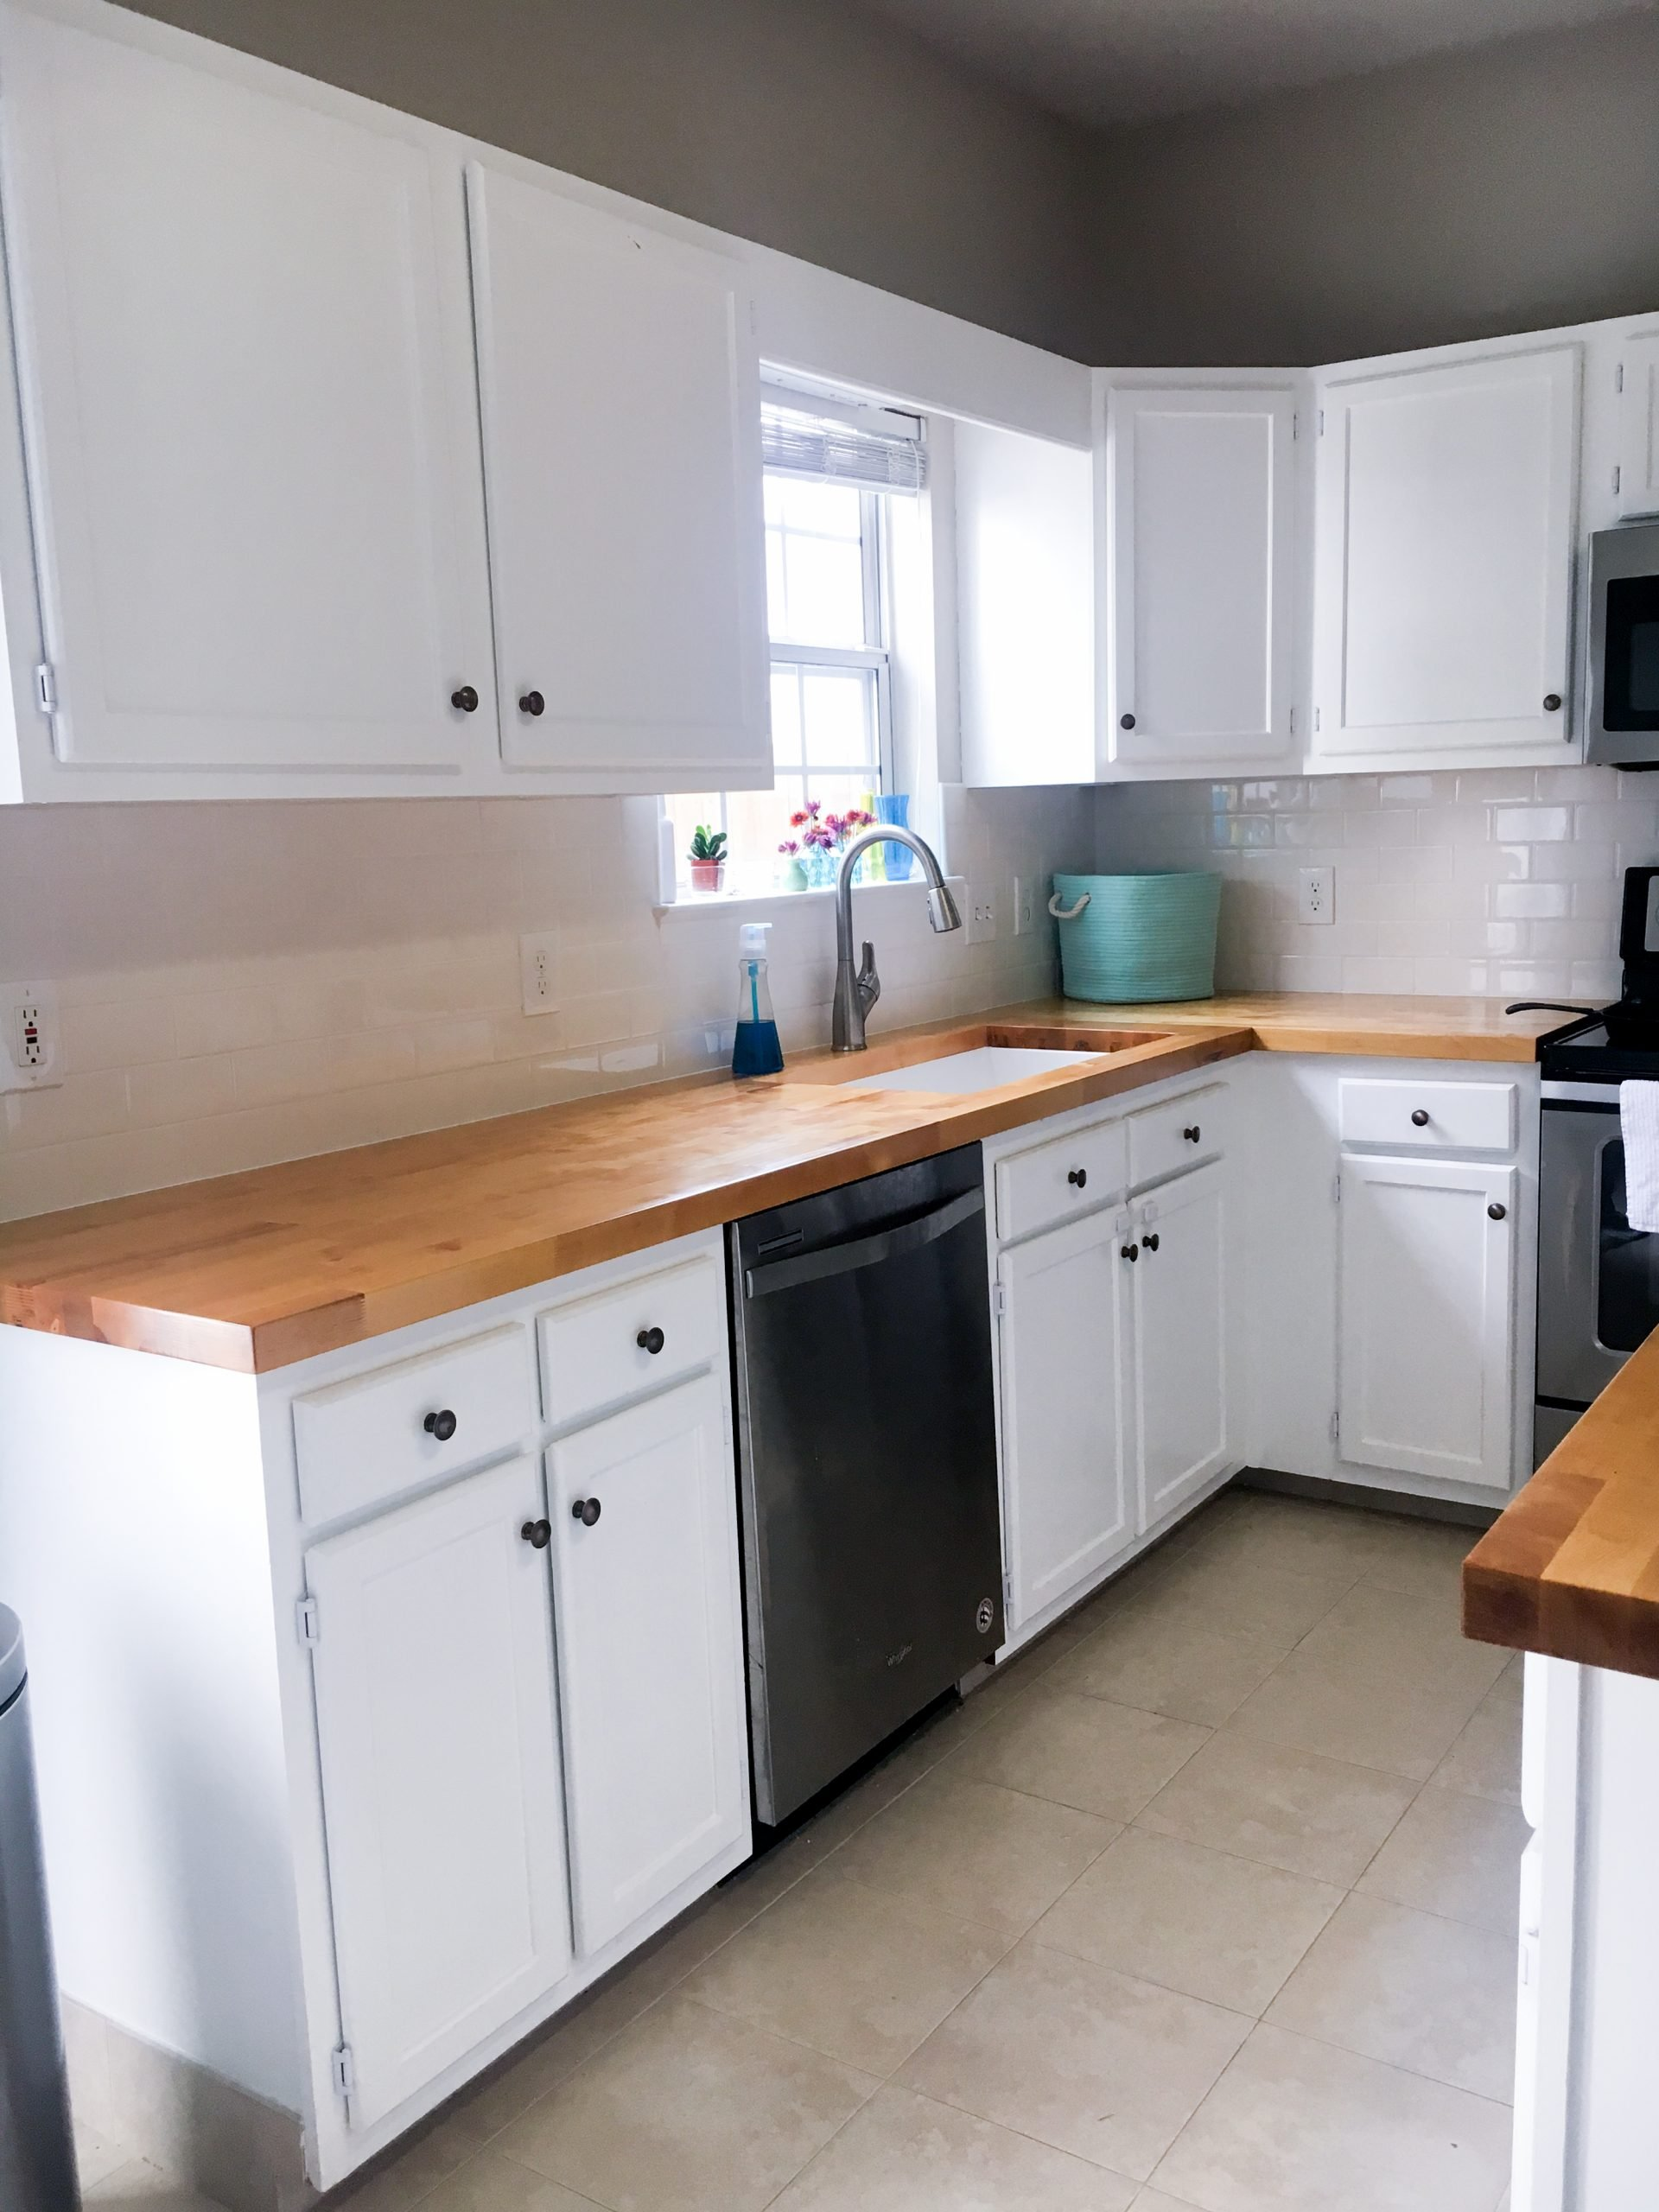 a simple way to update cabinets can be as easy as replacing dark hinges for white ones. cute kitchen with white cabinets, subway tile backsplash, butcher block counters, tile floor, stainless steel appliances.